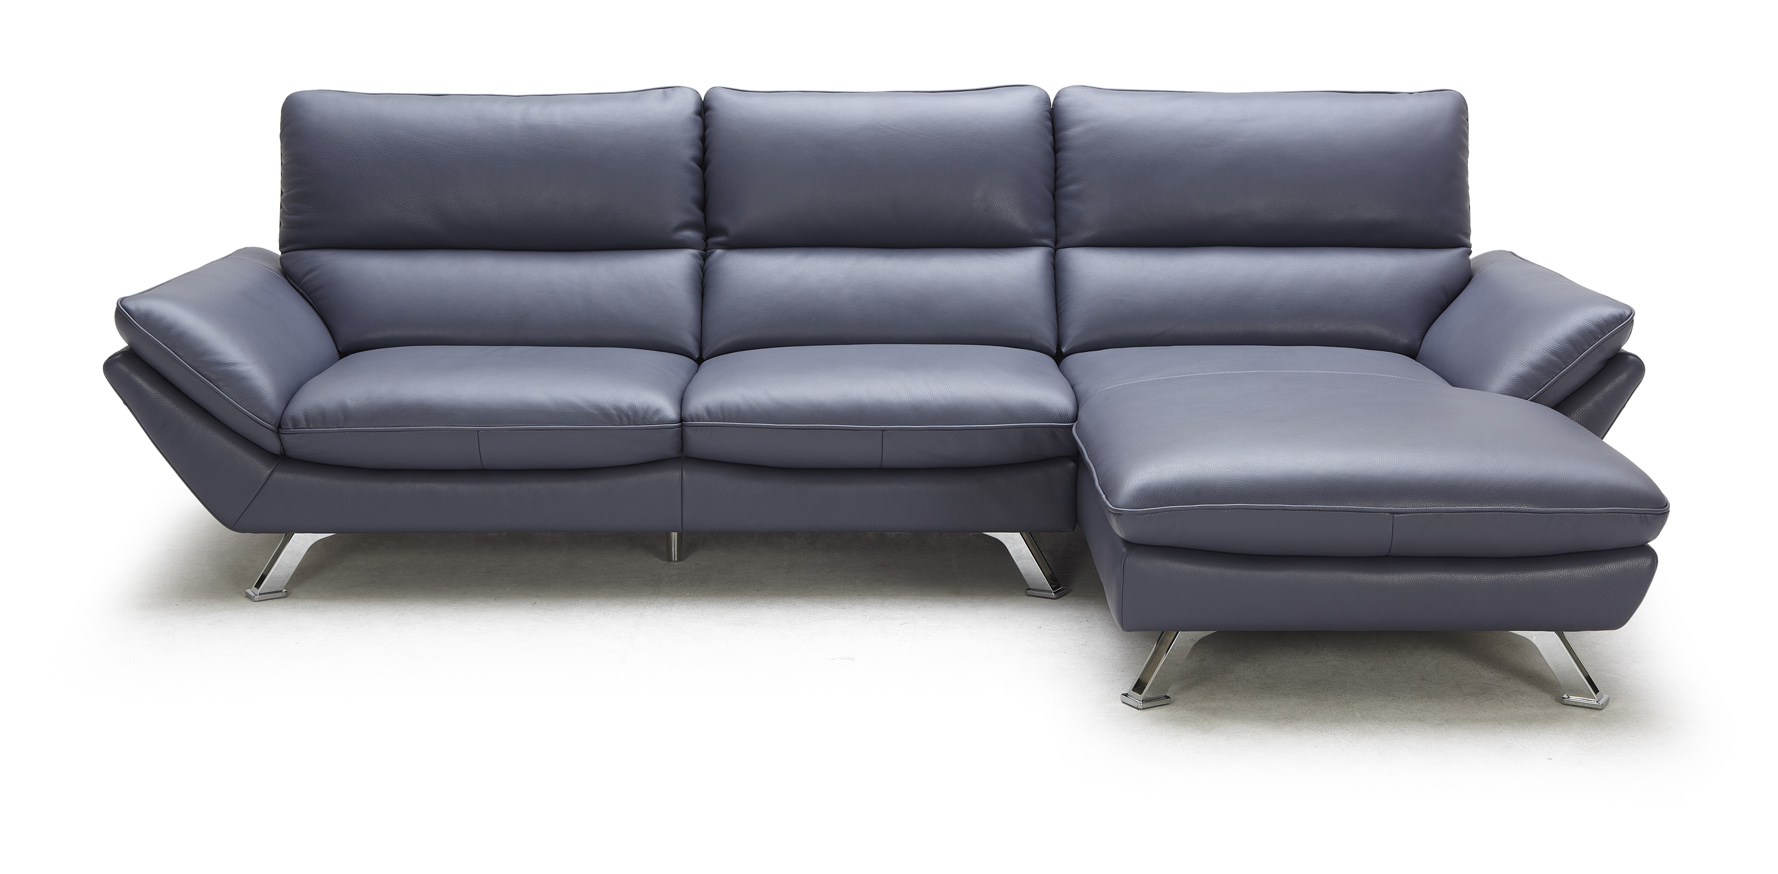 blue leather sectional sofa thesofa. Black Bedroom Furniture Sets. Home Design Ideas